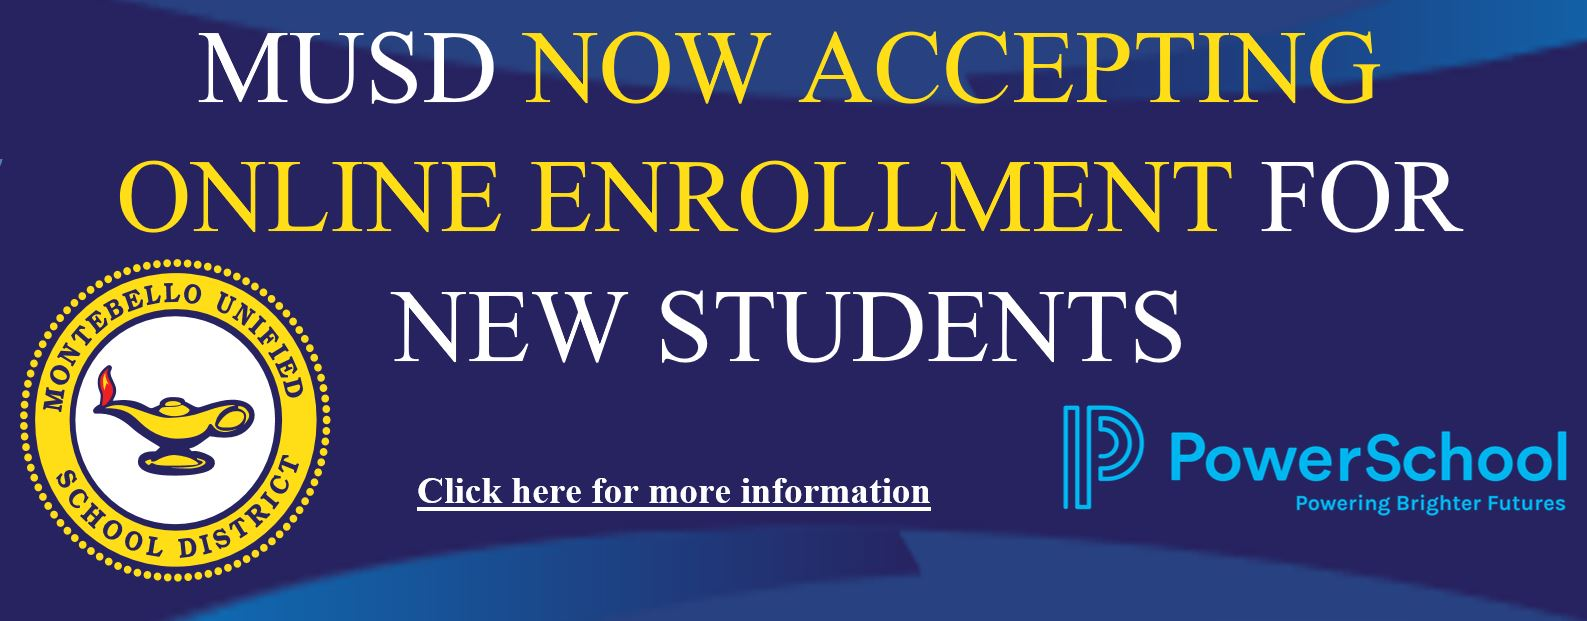 Online enrollment. Click for link